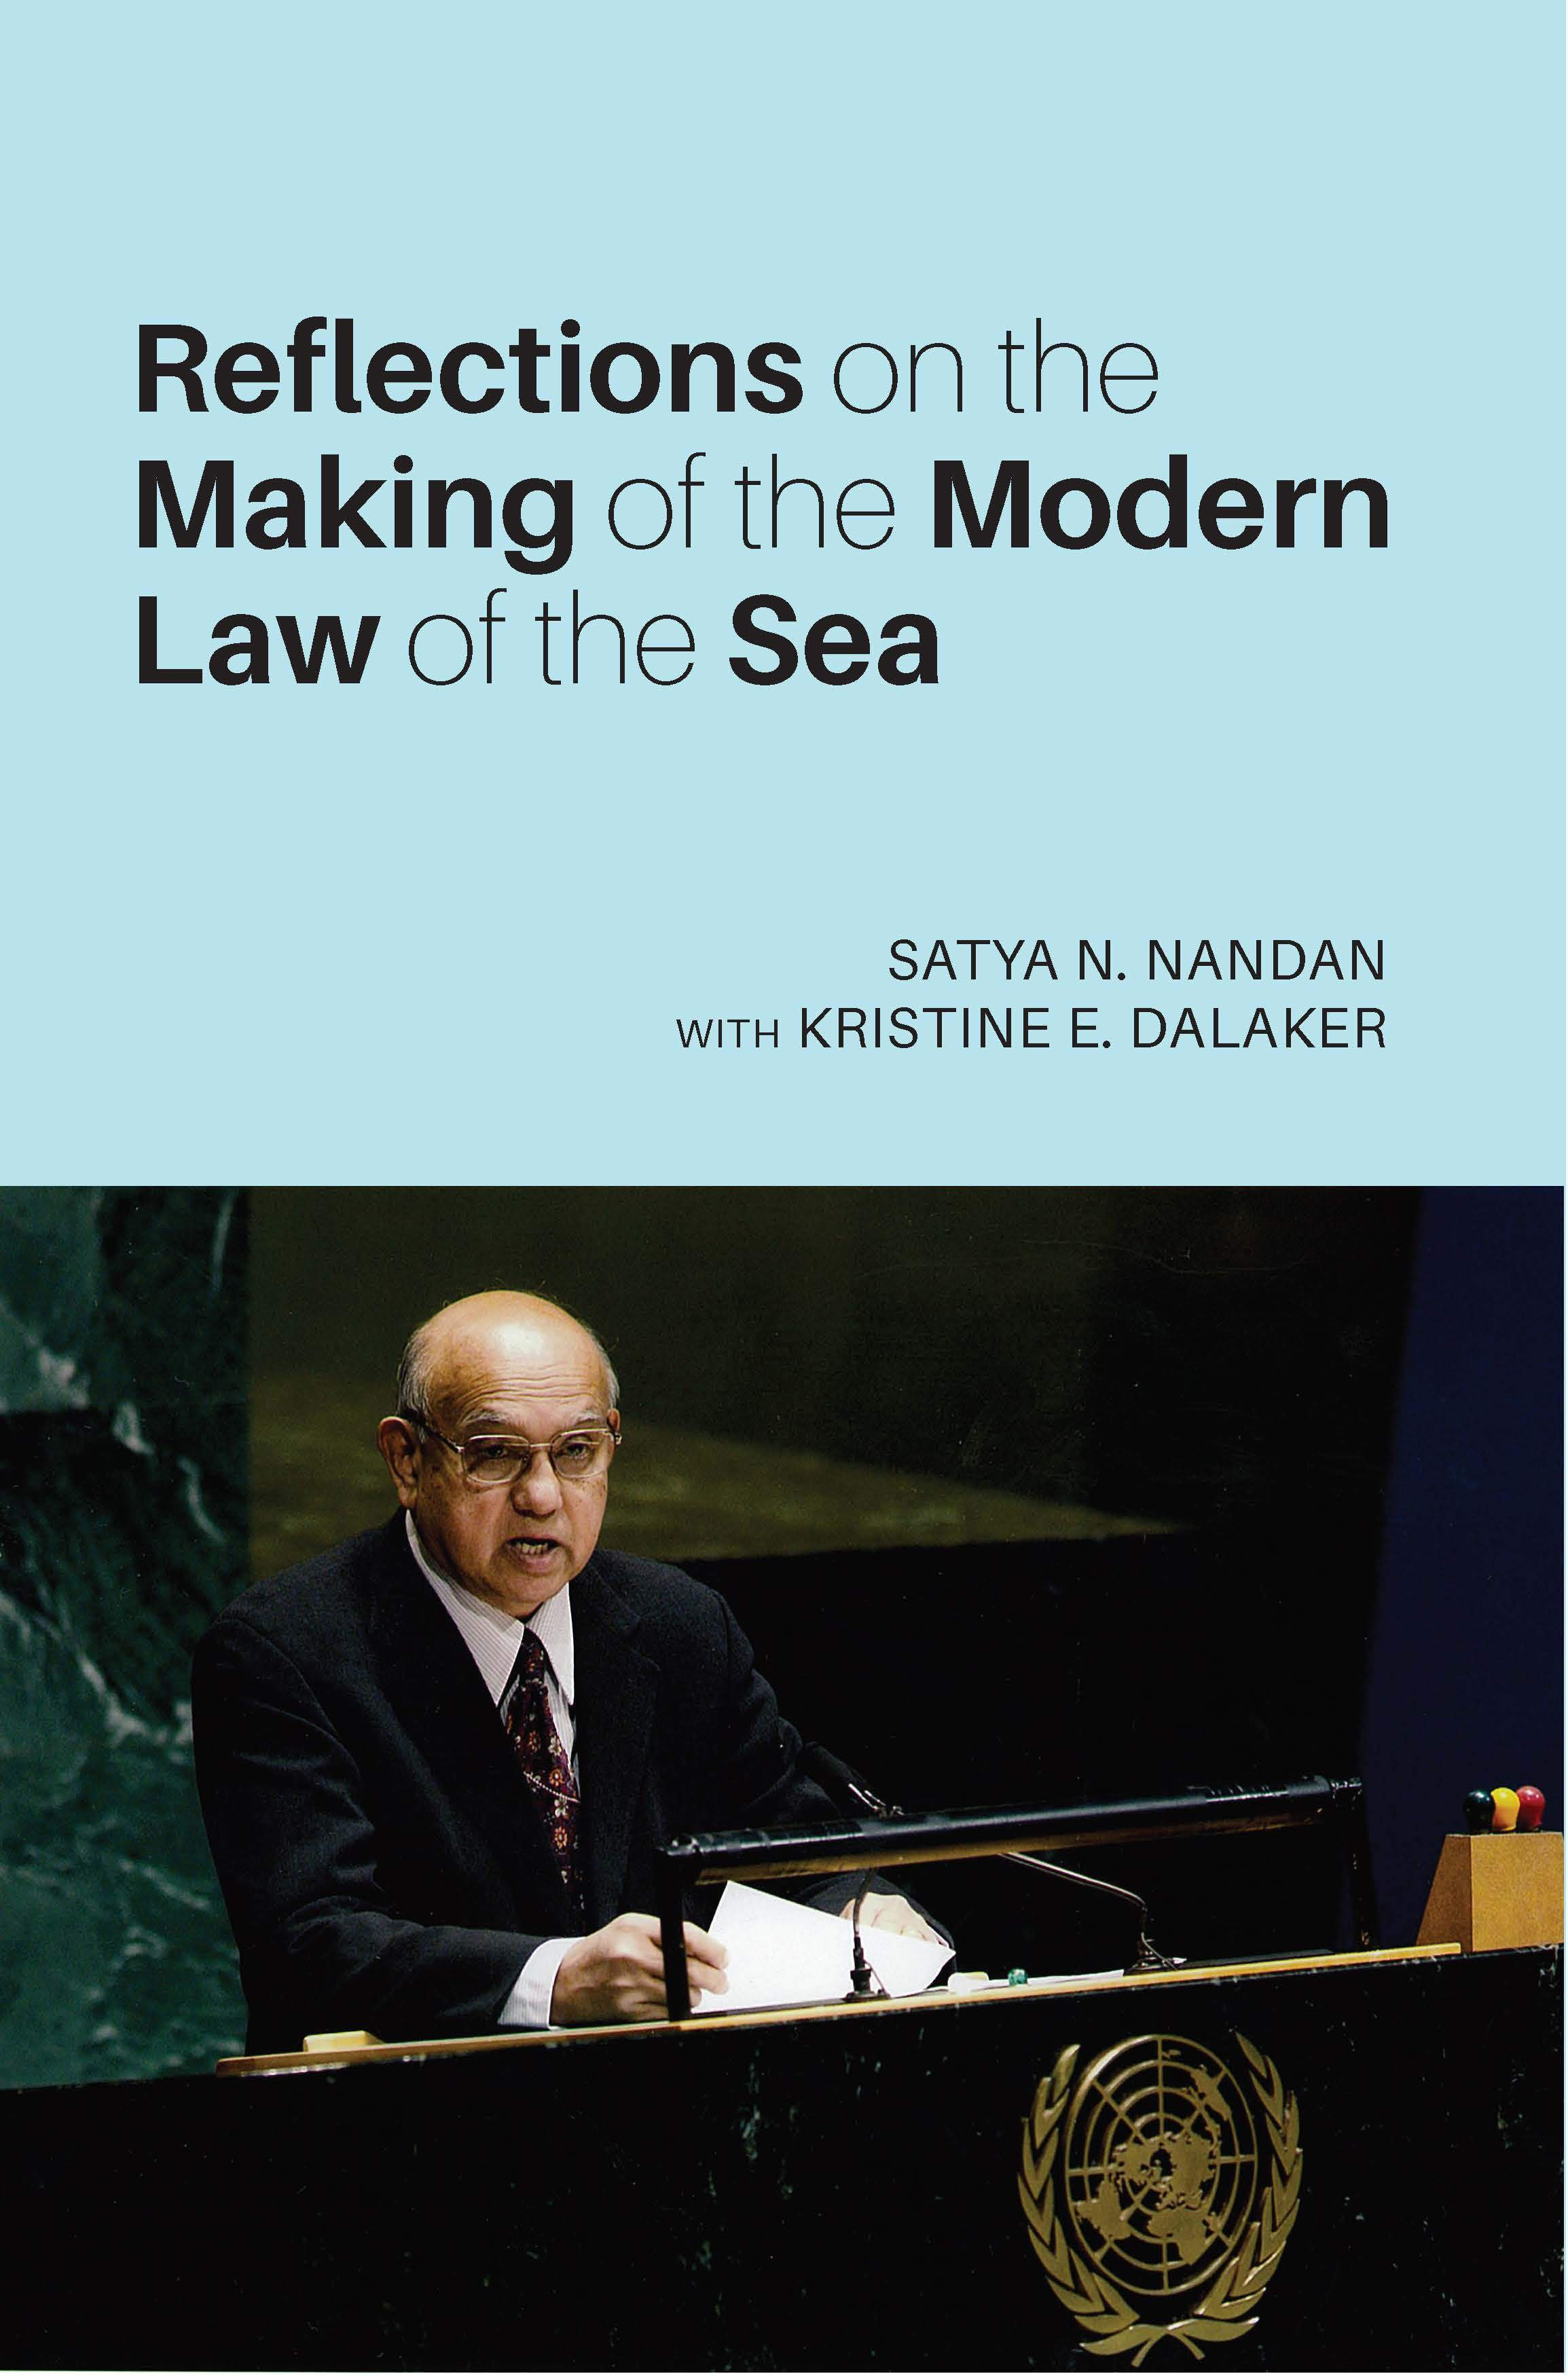 Reflections on the Making of the Modern Law of the Sea